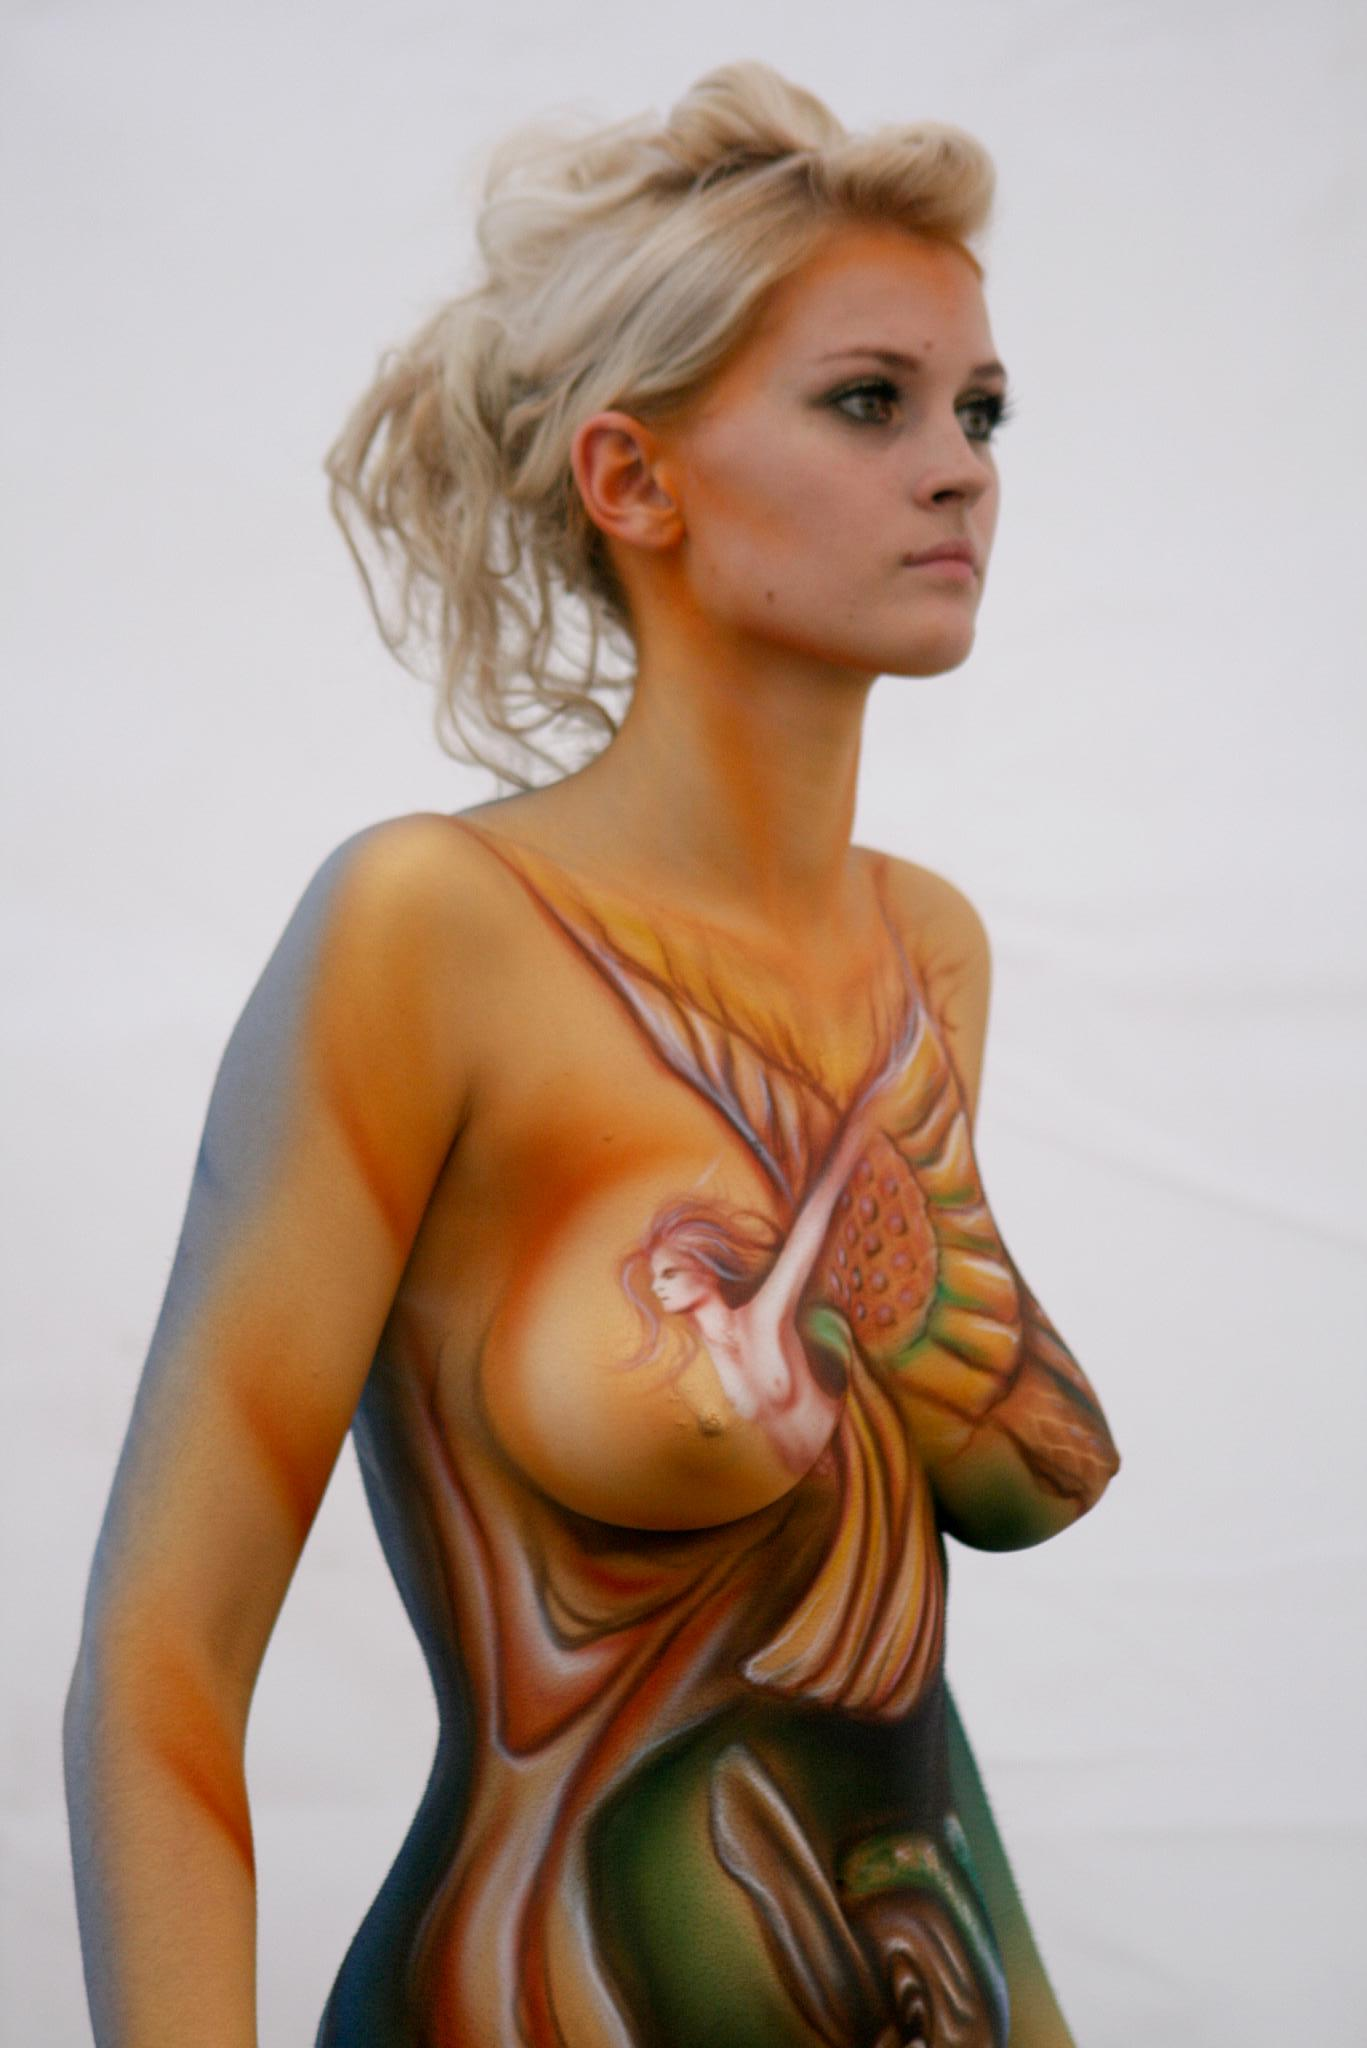 Description Female body painting.jpg